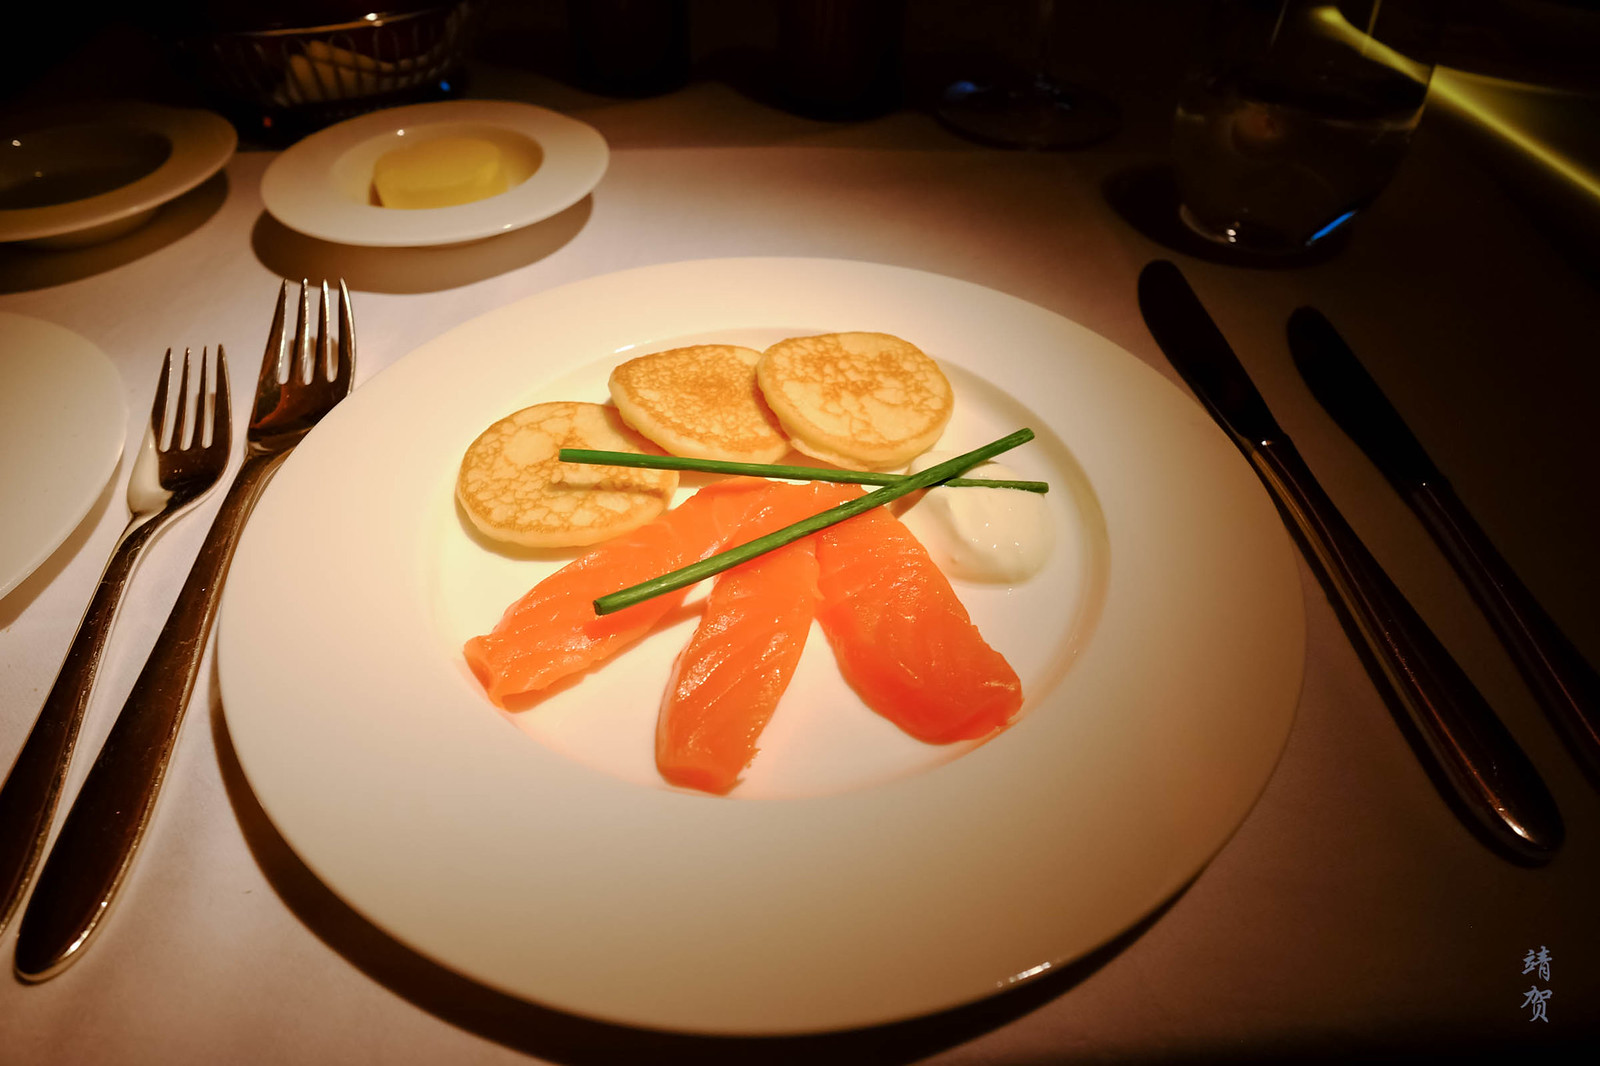 Balik salmon with blinis and sour cream